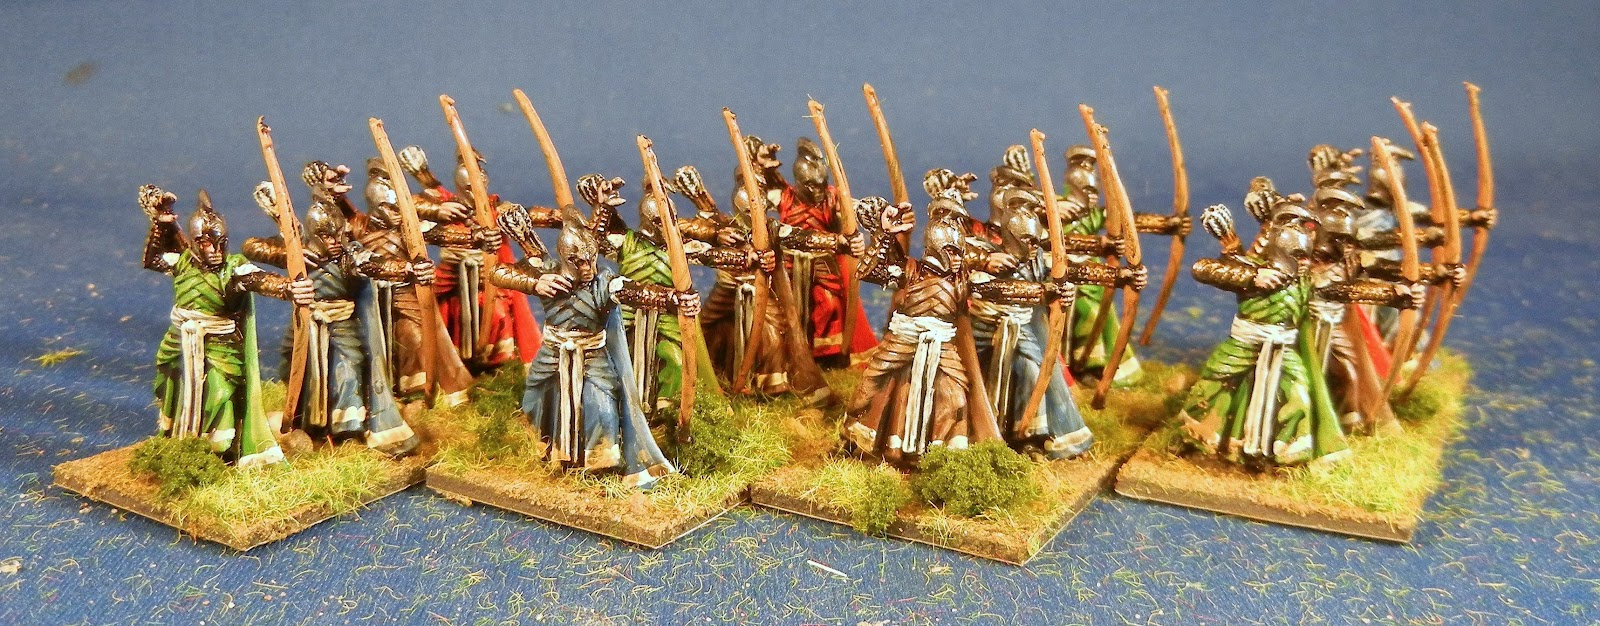 Lord Of The Rings Wargame Figures